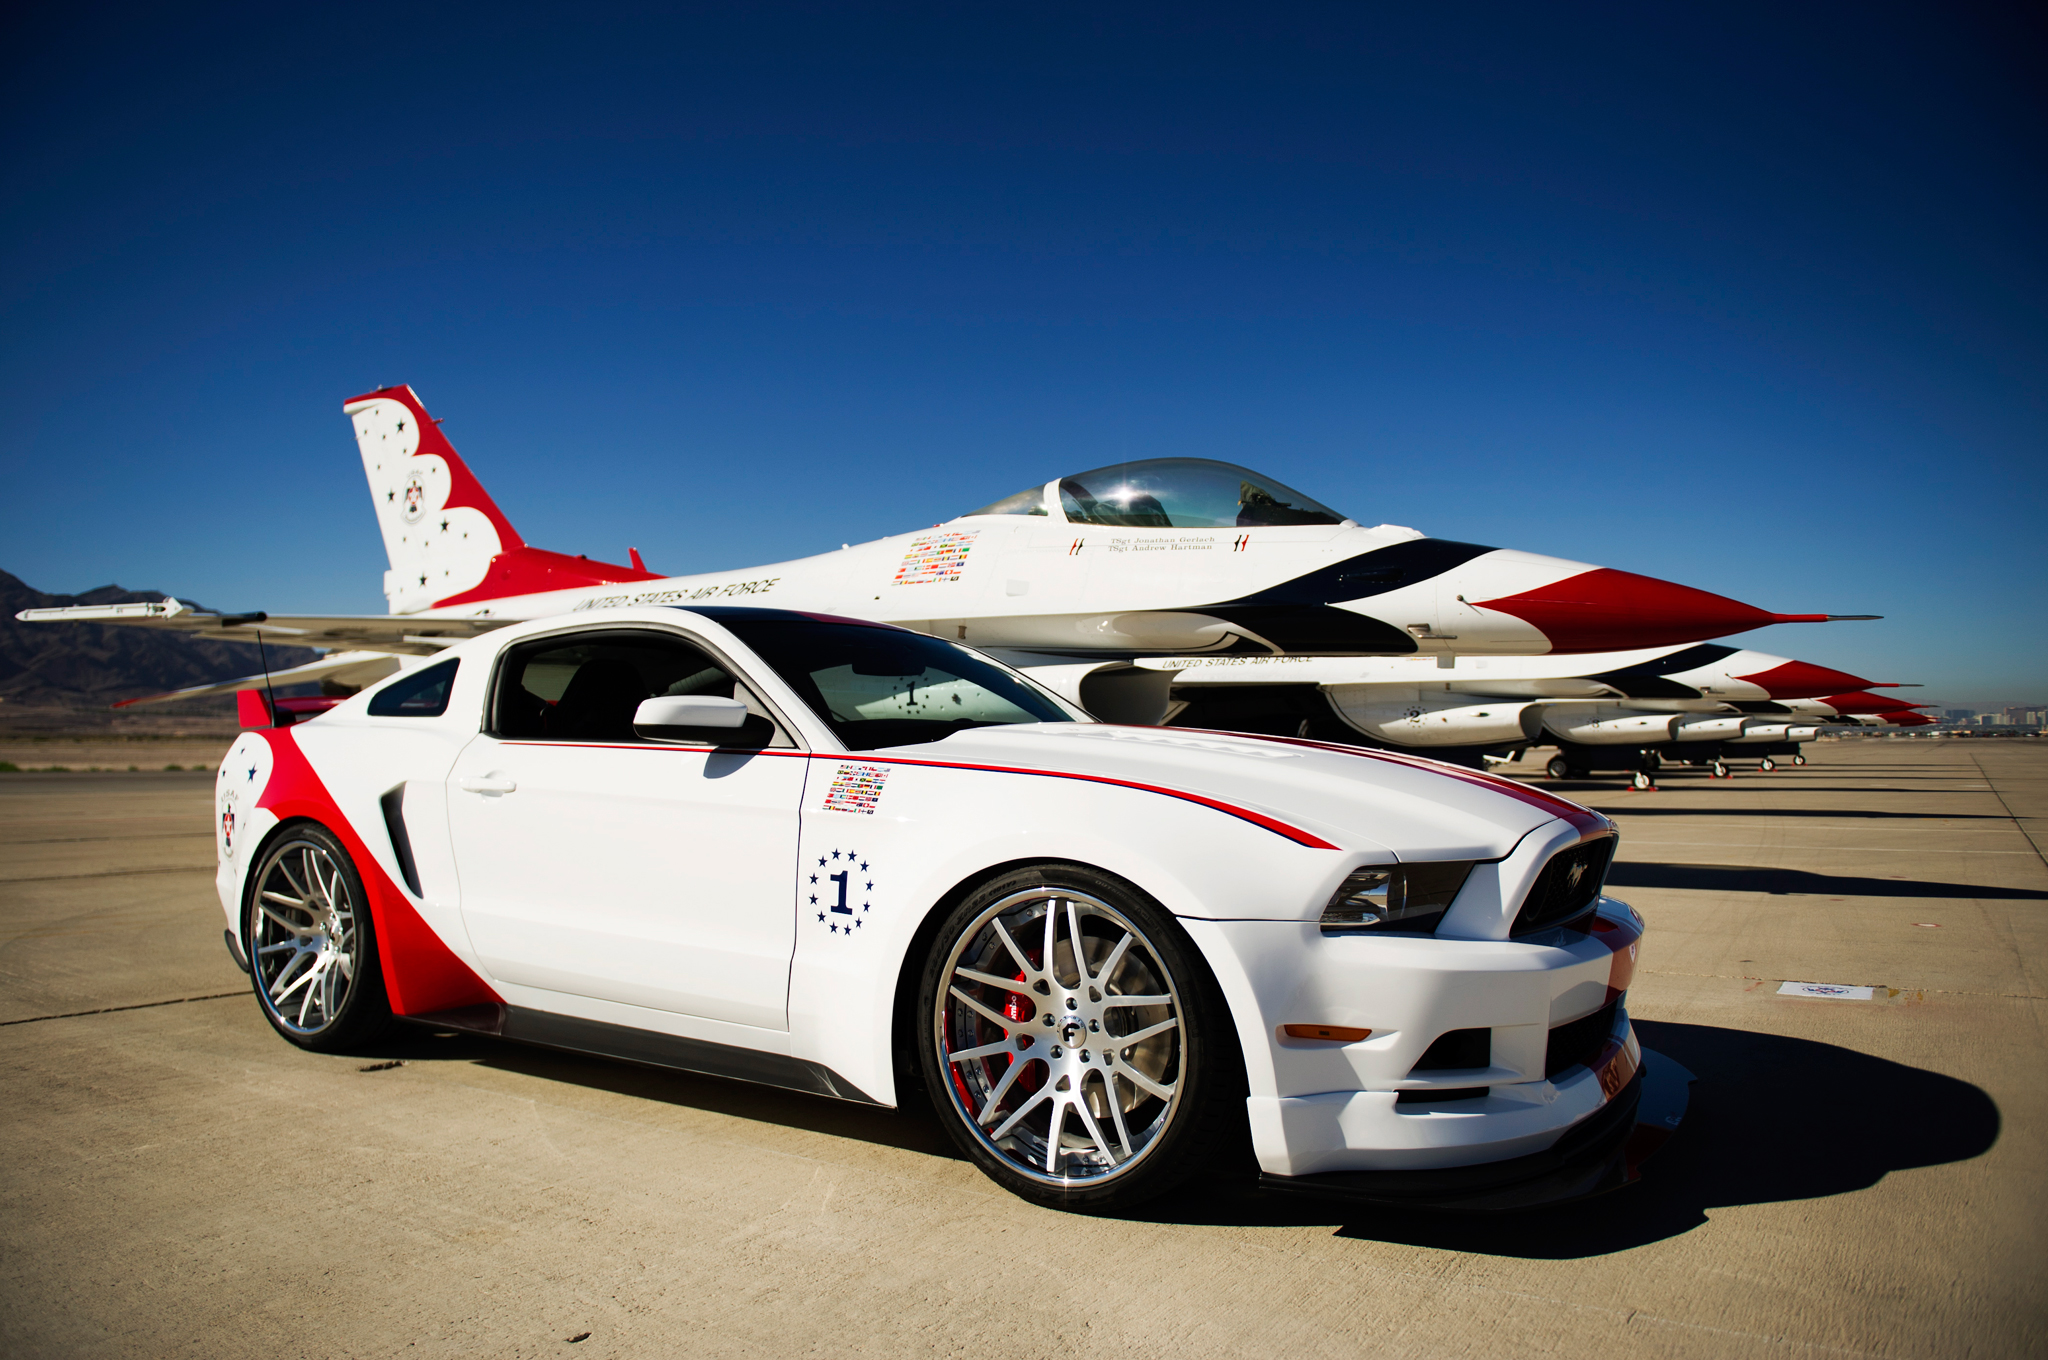 Special edition 2014 ford mustang gt raises 398000 for youth